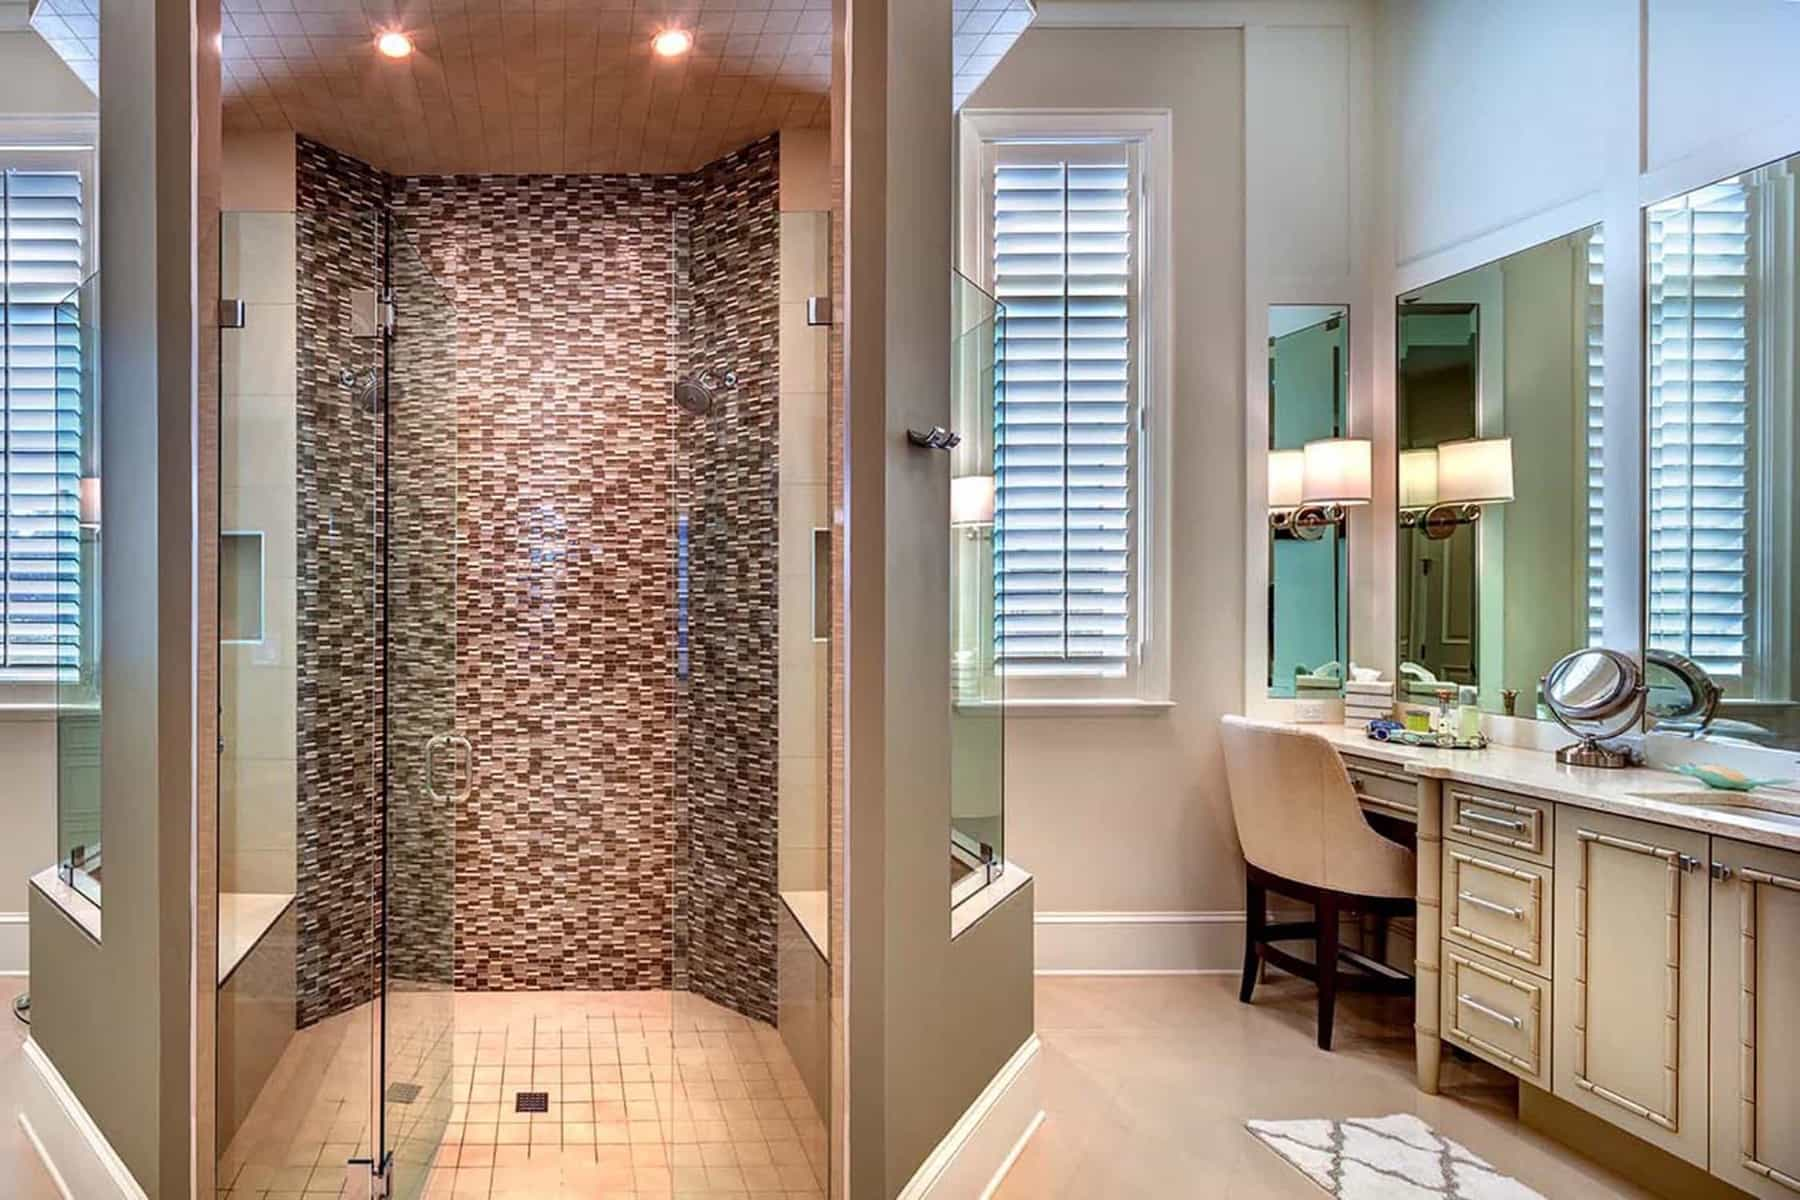 Featured Image of Master Bathroom With Beauty Vanity And Glass Enclosed Shower Stall